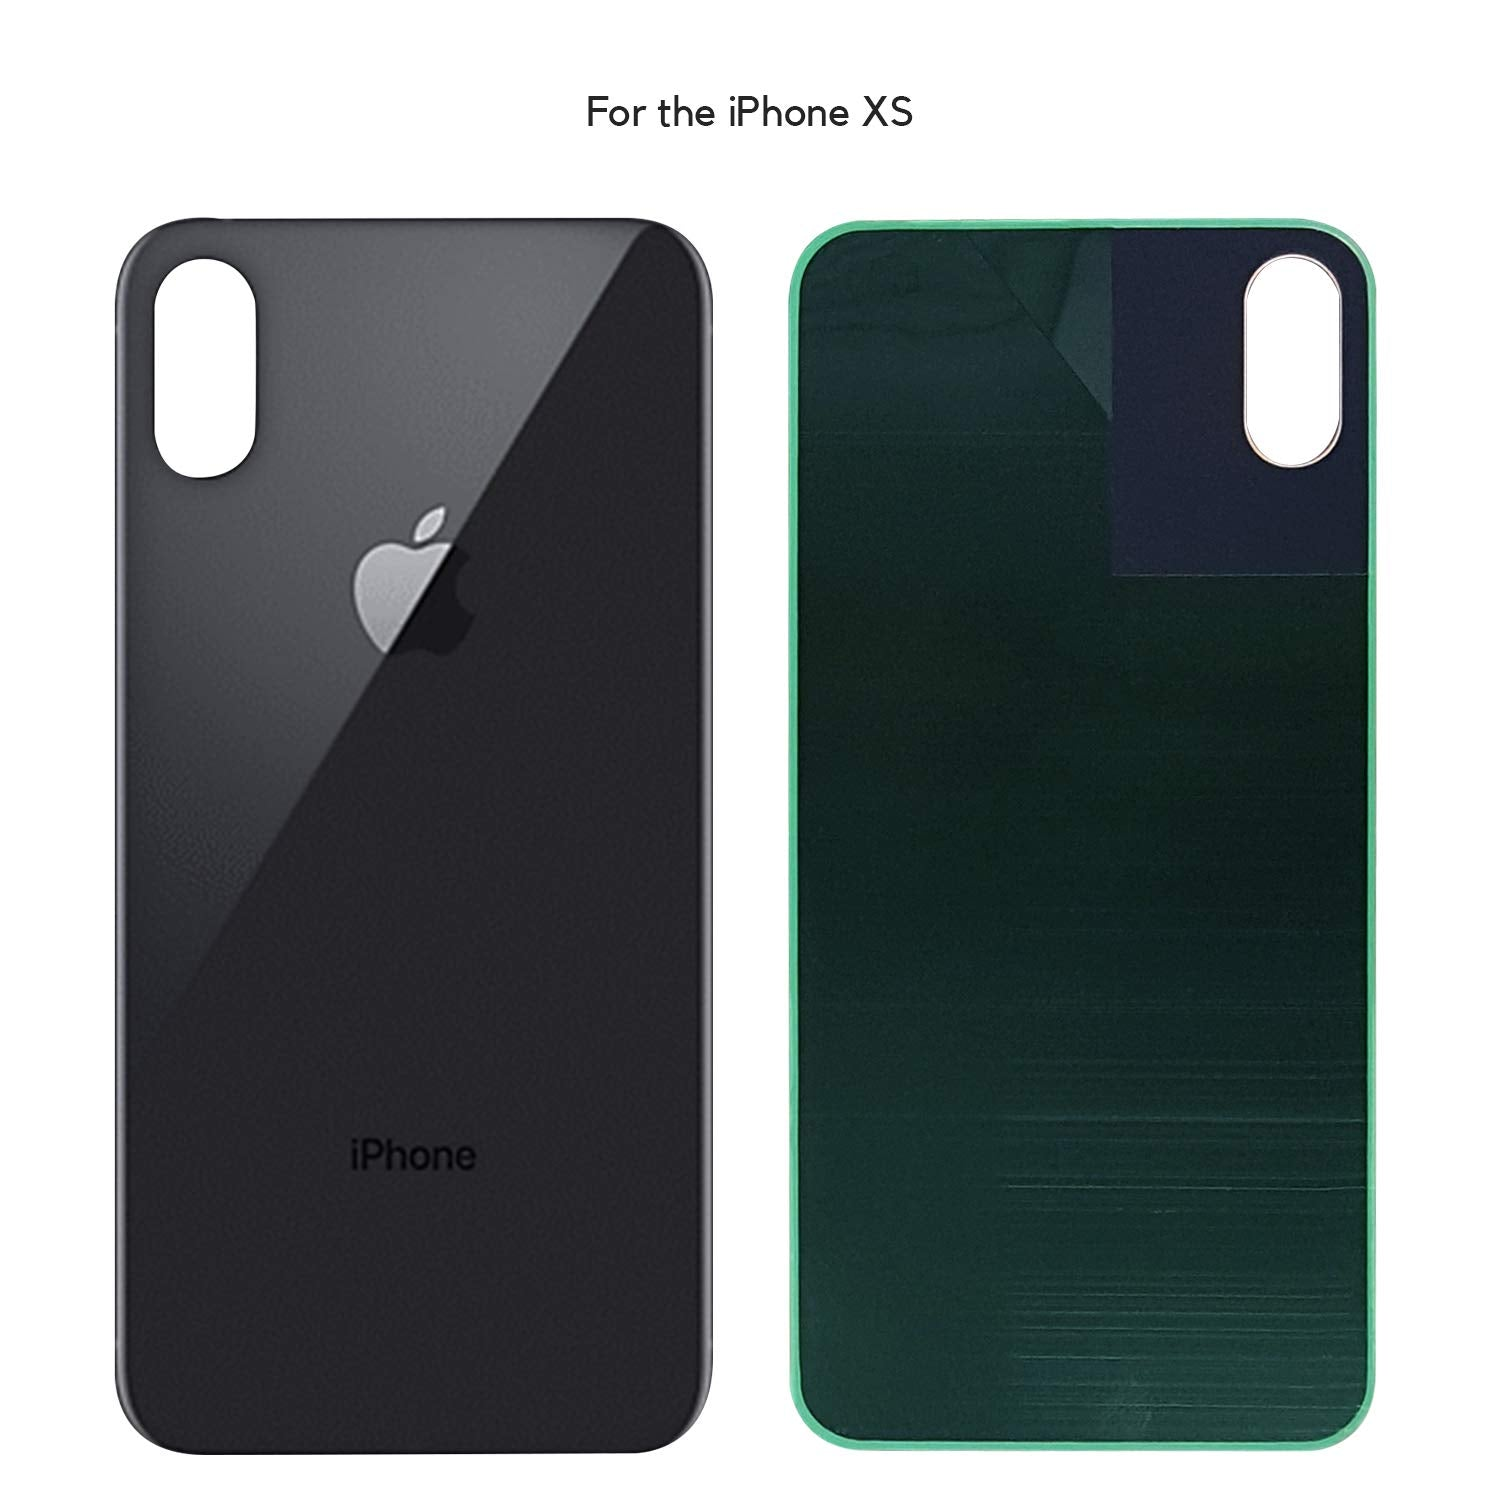 meet 61154 6c3e4 Apple iPhone XS Back Glass SPACE GRAY OEM Replacement Battery Door Cover